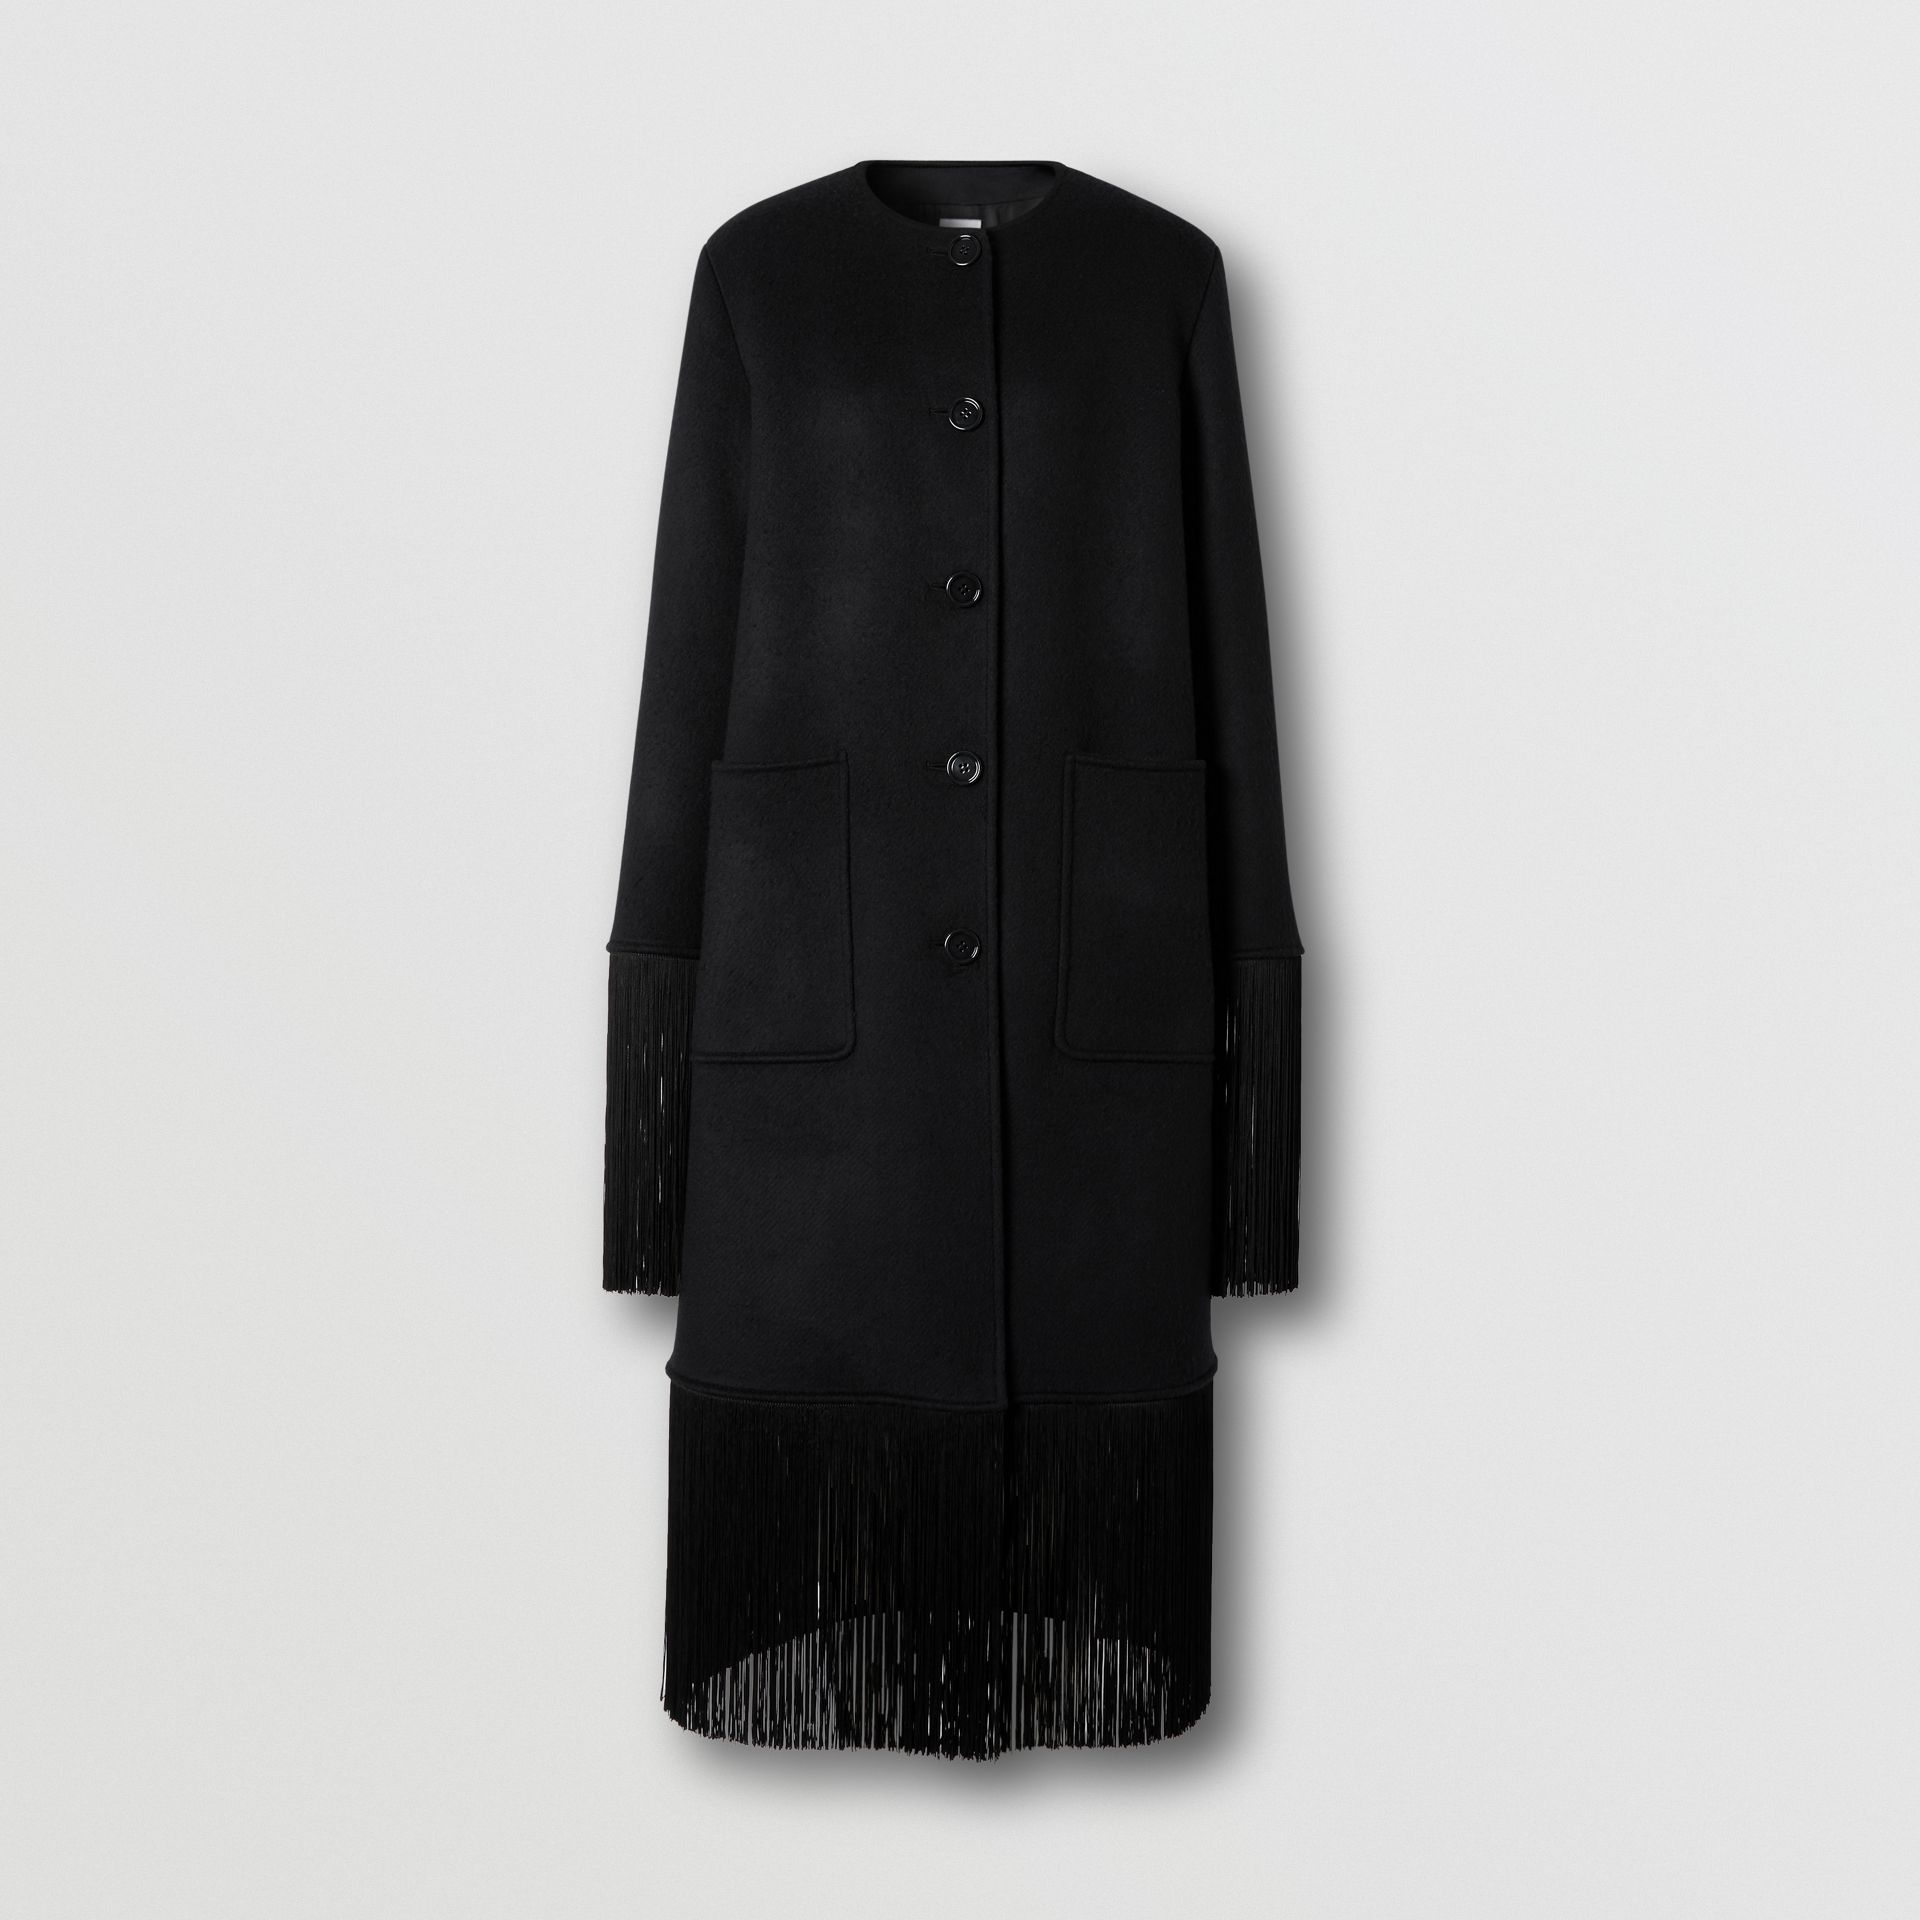 Fringed Double-faced Wool Cashmere Car Coat in Black - Women | Burberry United Kingdom - gallery image 3